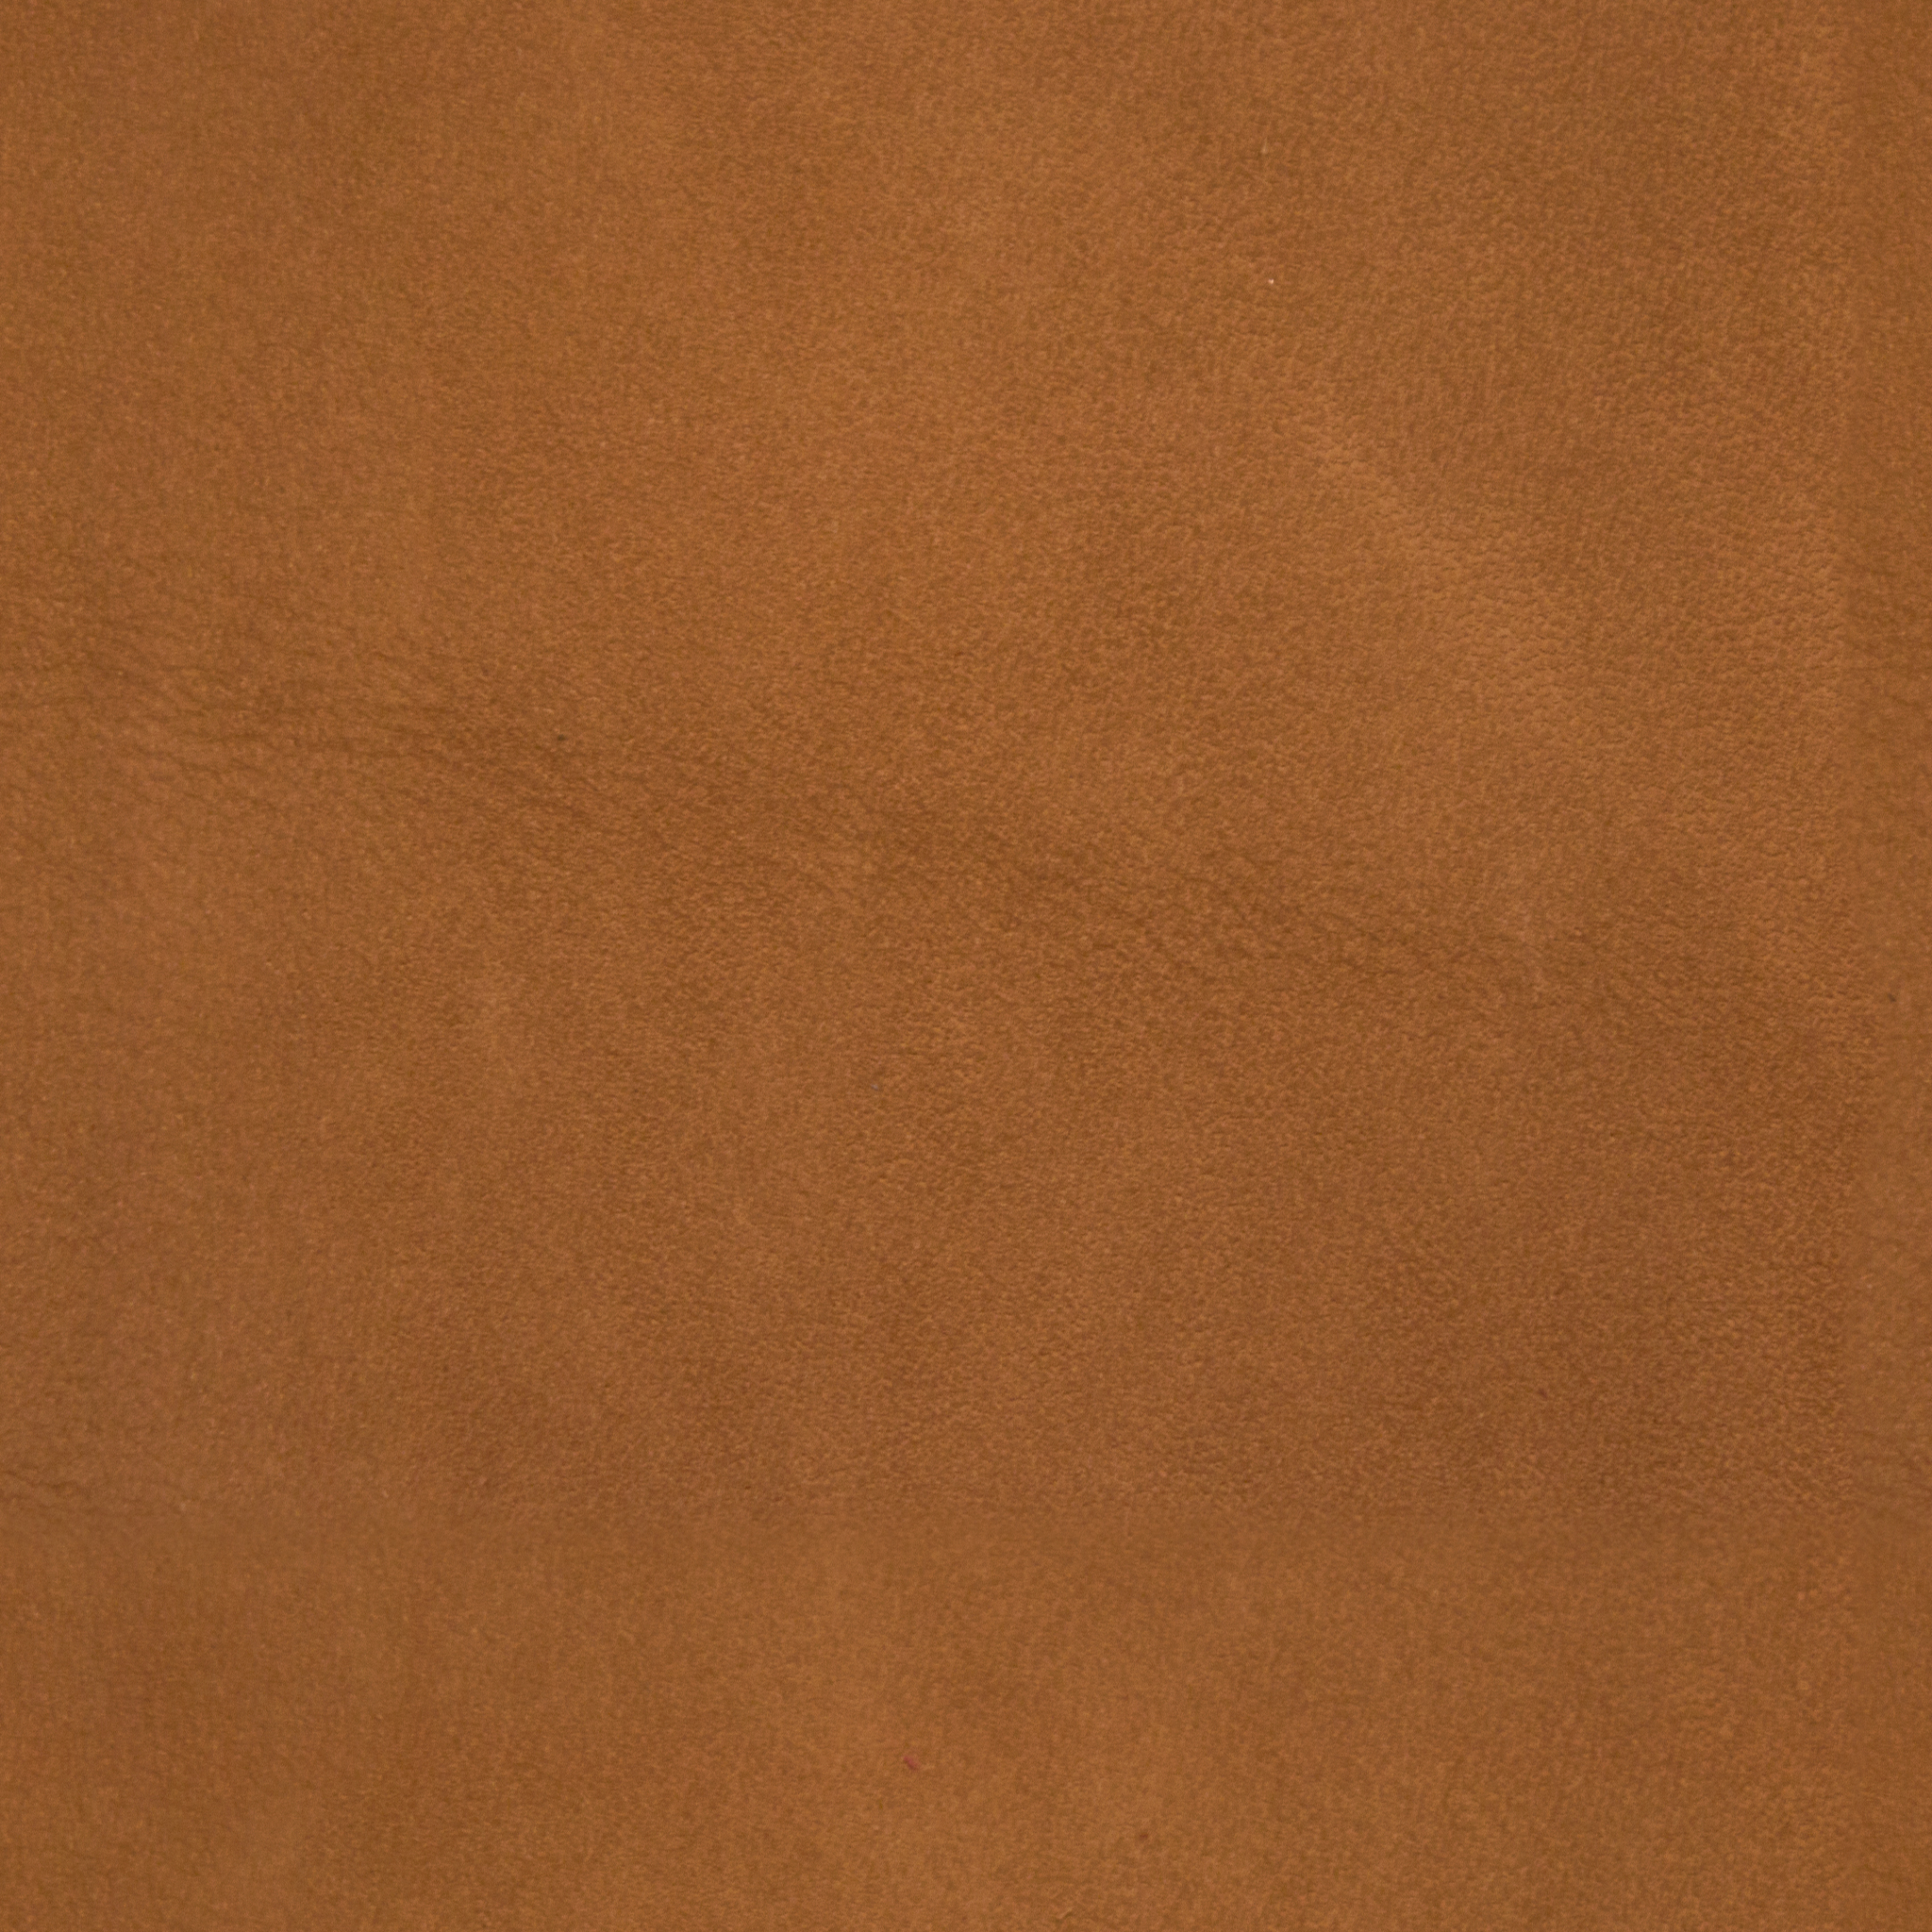 Flat Caramel Leather.jpg